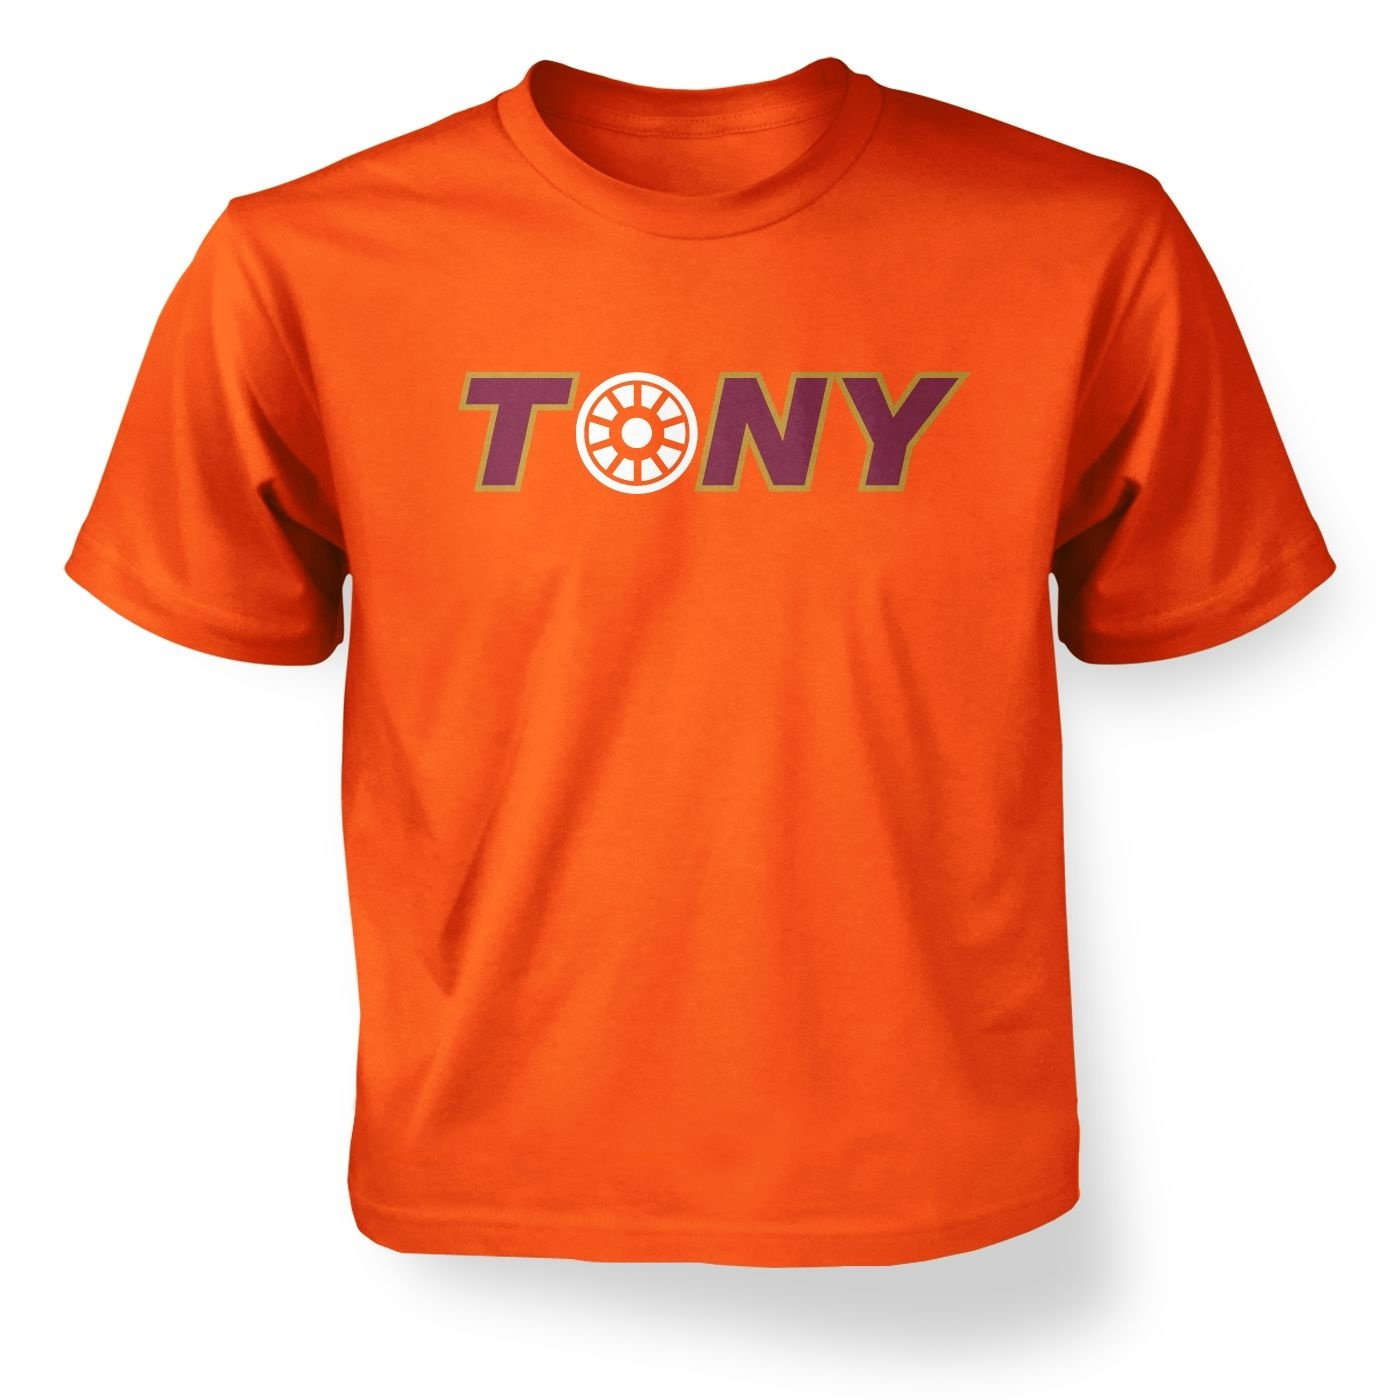 Tony Arc Reactor kids' t-shirt